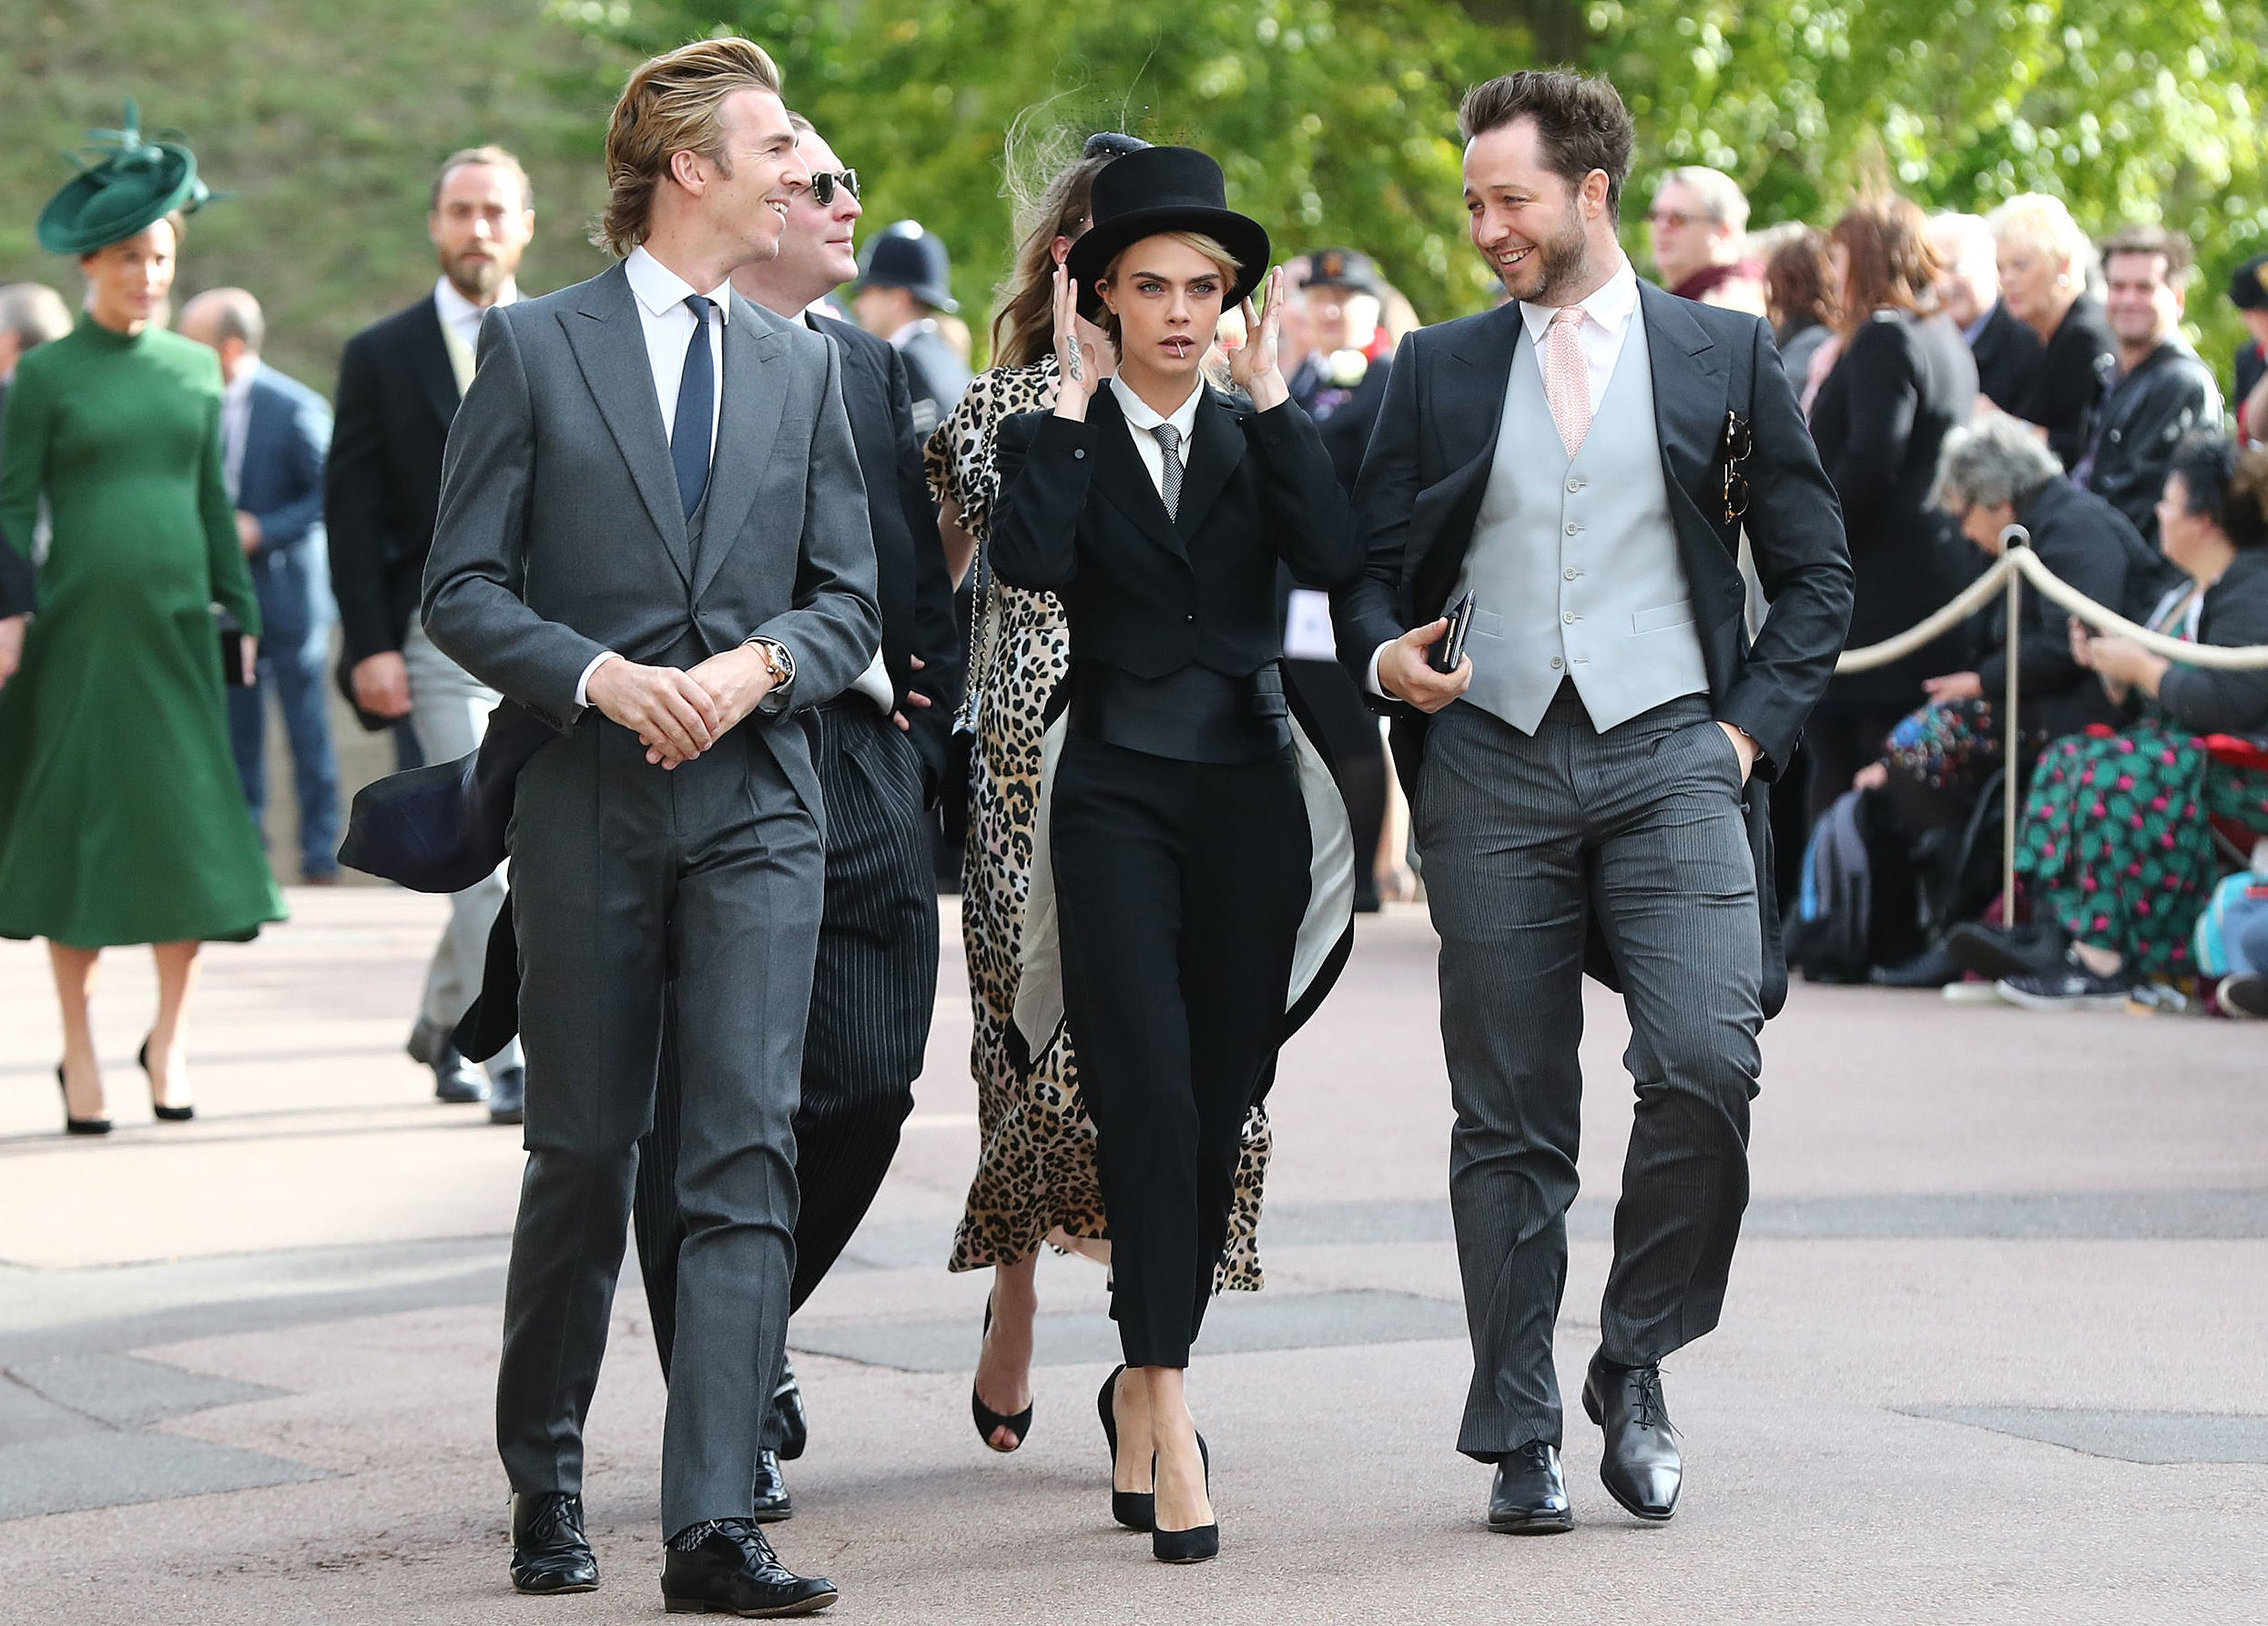 Cara Delevingne Asked Princess Eugenie S Permission To Wear Tuxedo To Royal Wedding The Independent The Independent Karoline copping broadway and theatre credits. wear tuxedo to royal wedding